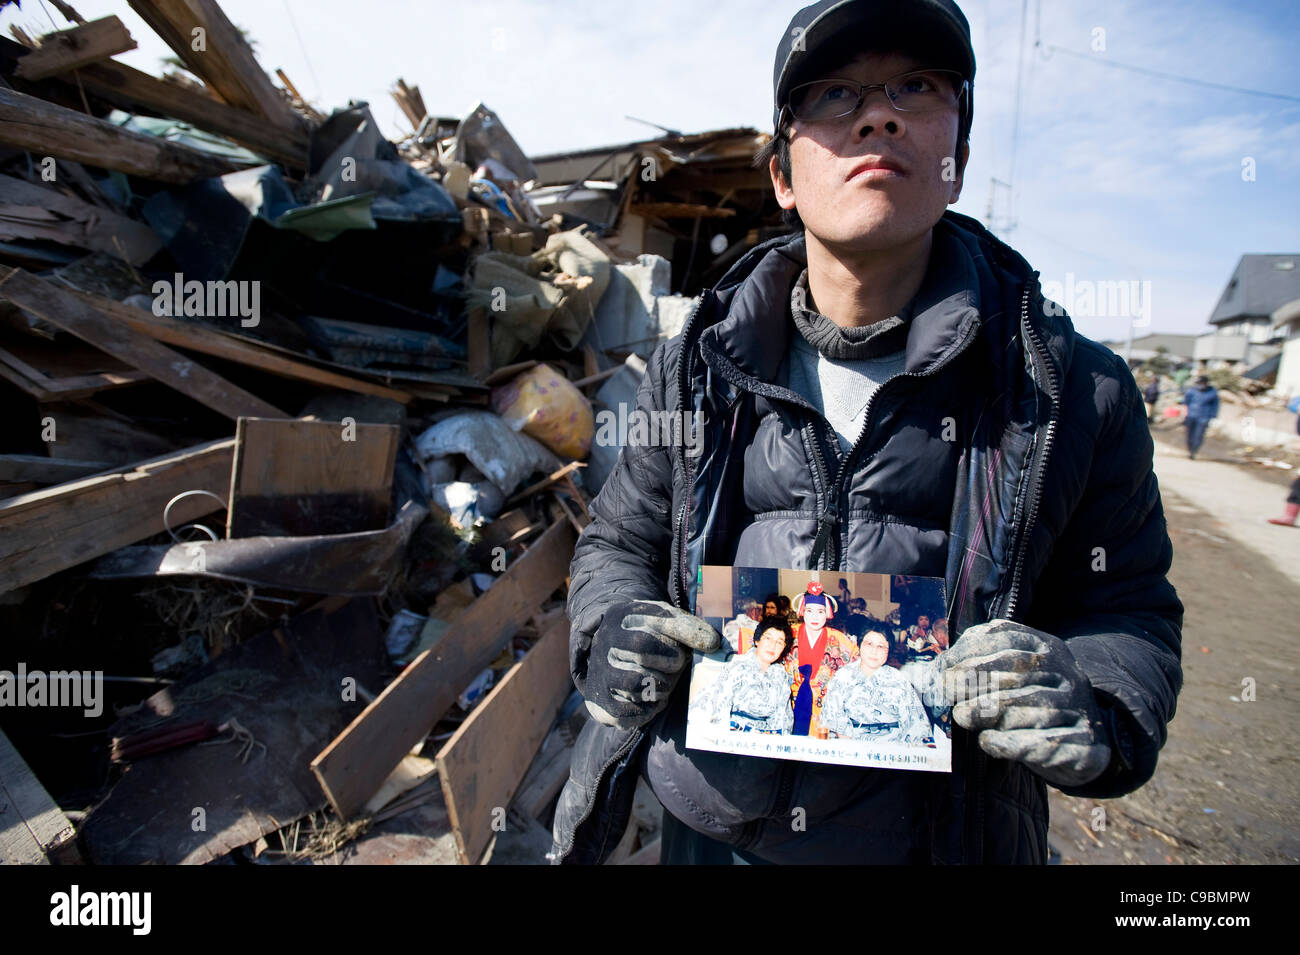 Makoto Takahashi shows a photo of his mother (shown on the left of the photo) whom he found dead outside their home - Stock Image